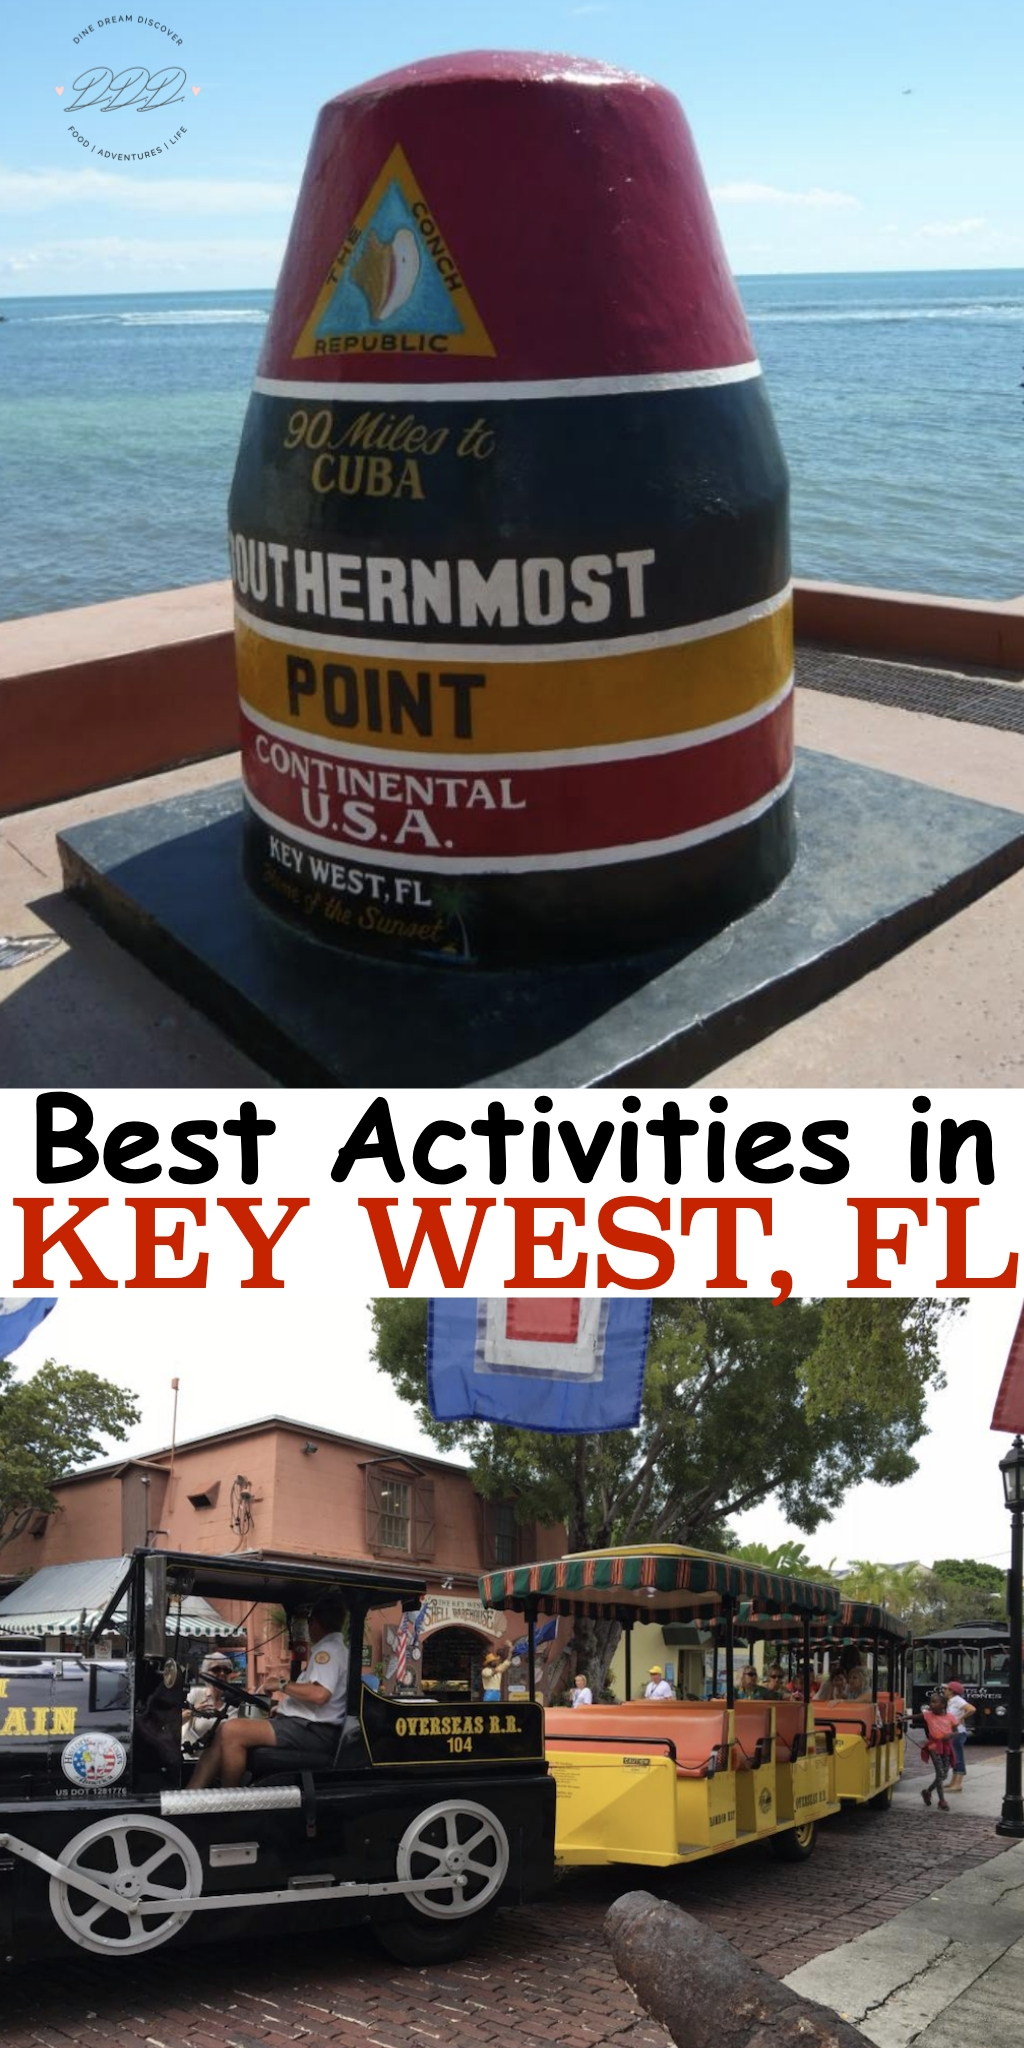 Key West is the most laid back artsy destination you can choose for vacation from walking on the beach to practicing your golf swing and visiting museums.